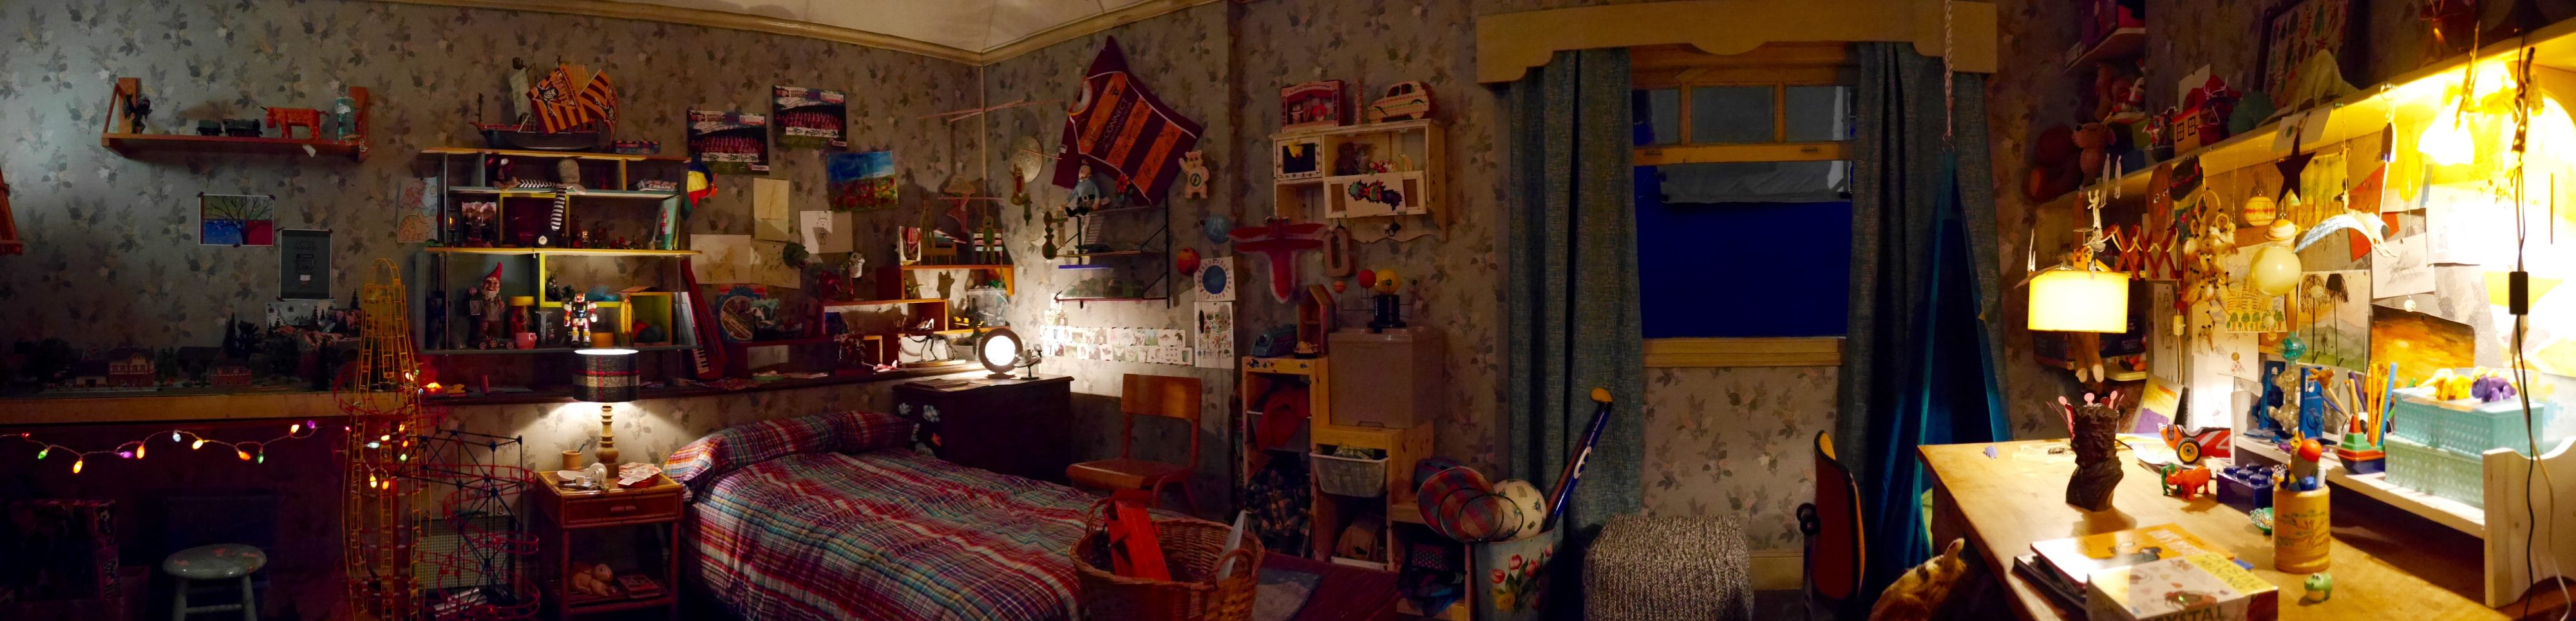 A MONSTER CALLS : BOY'S BEDROOM INTERIOR